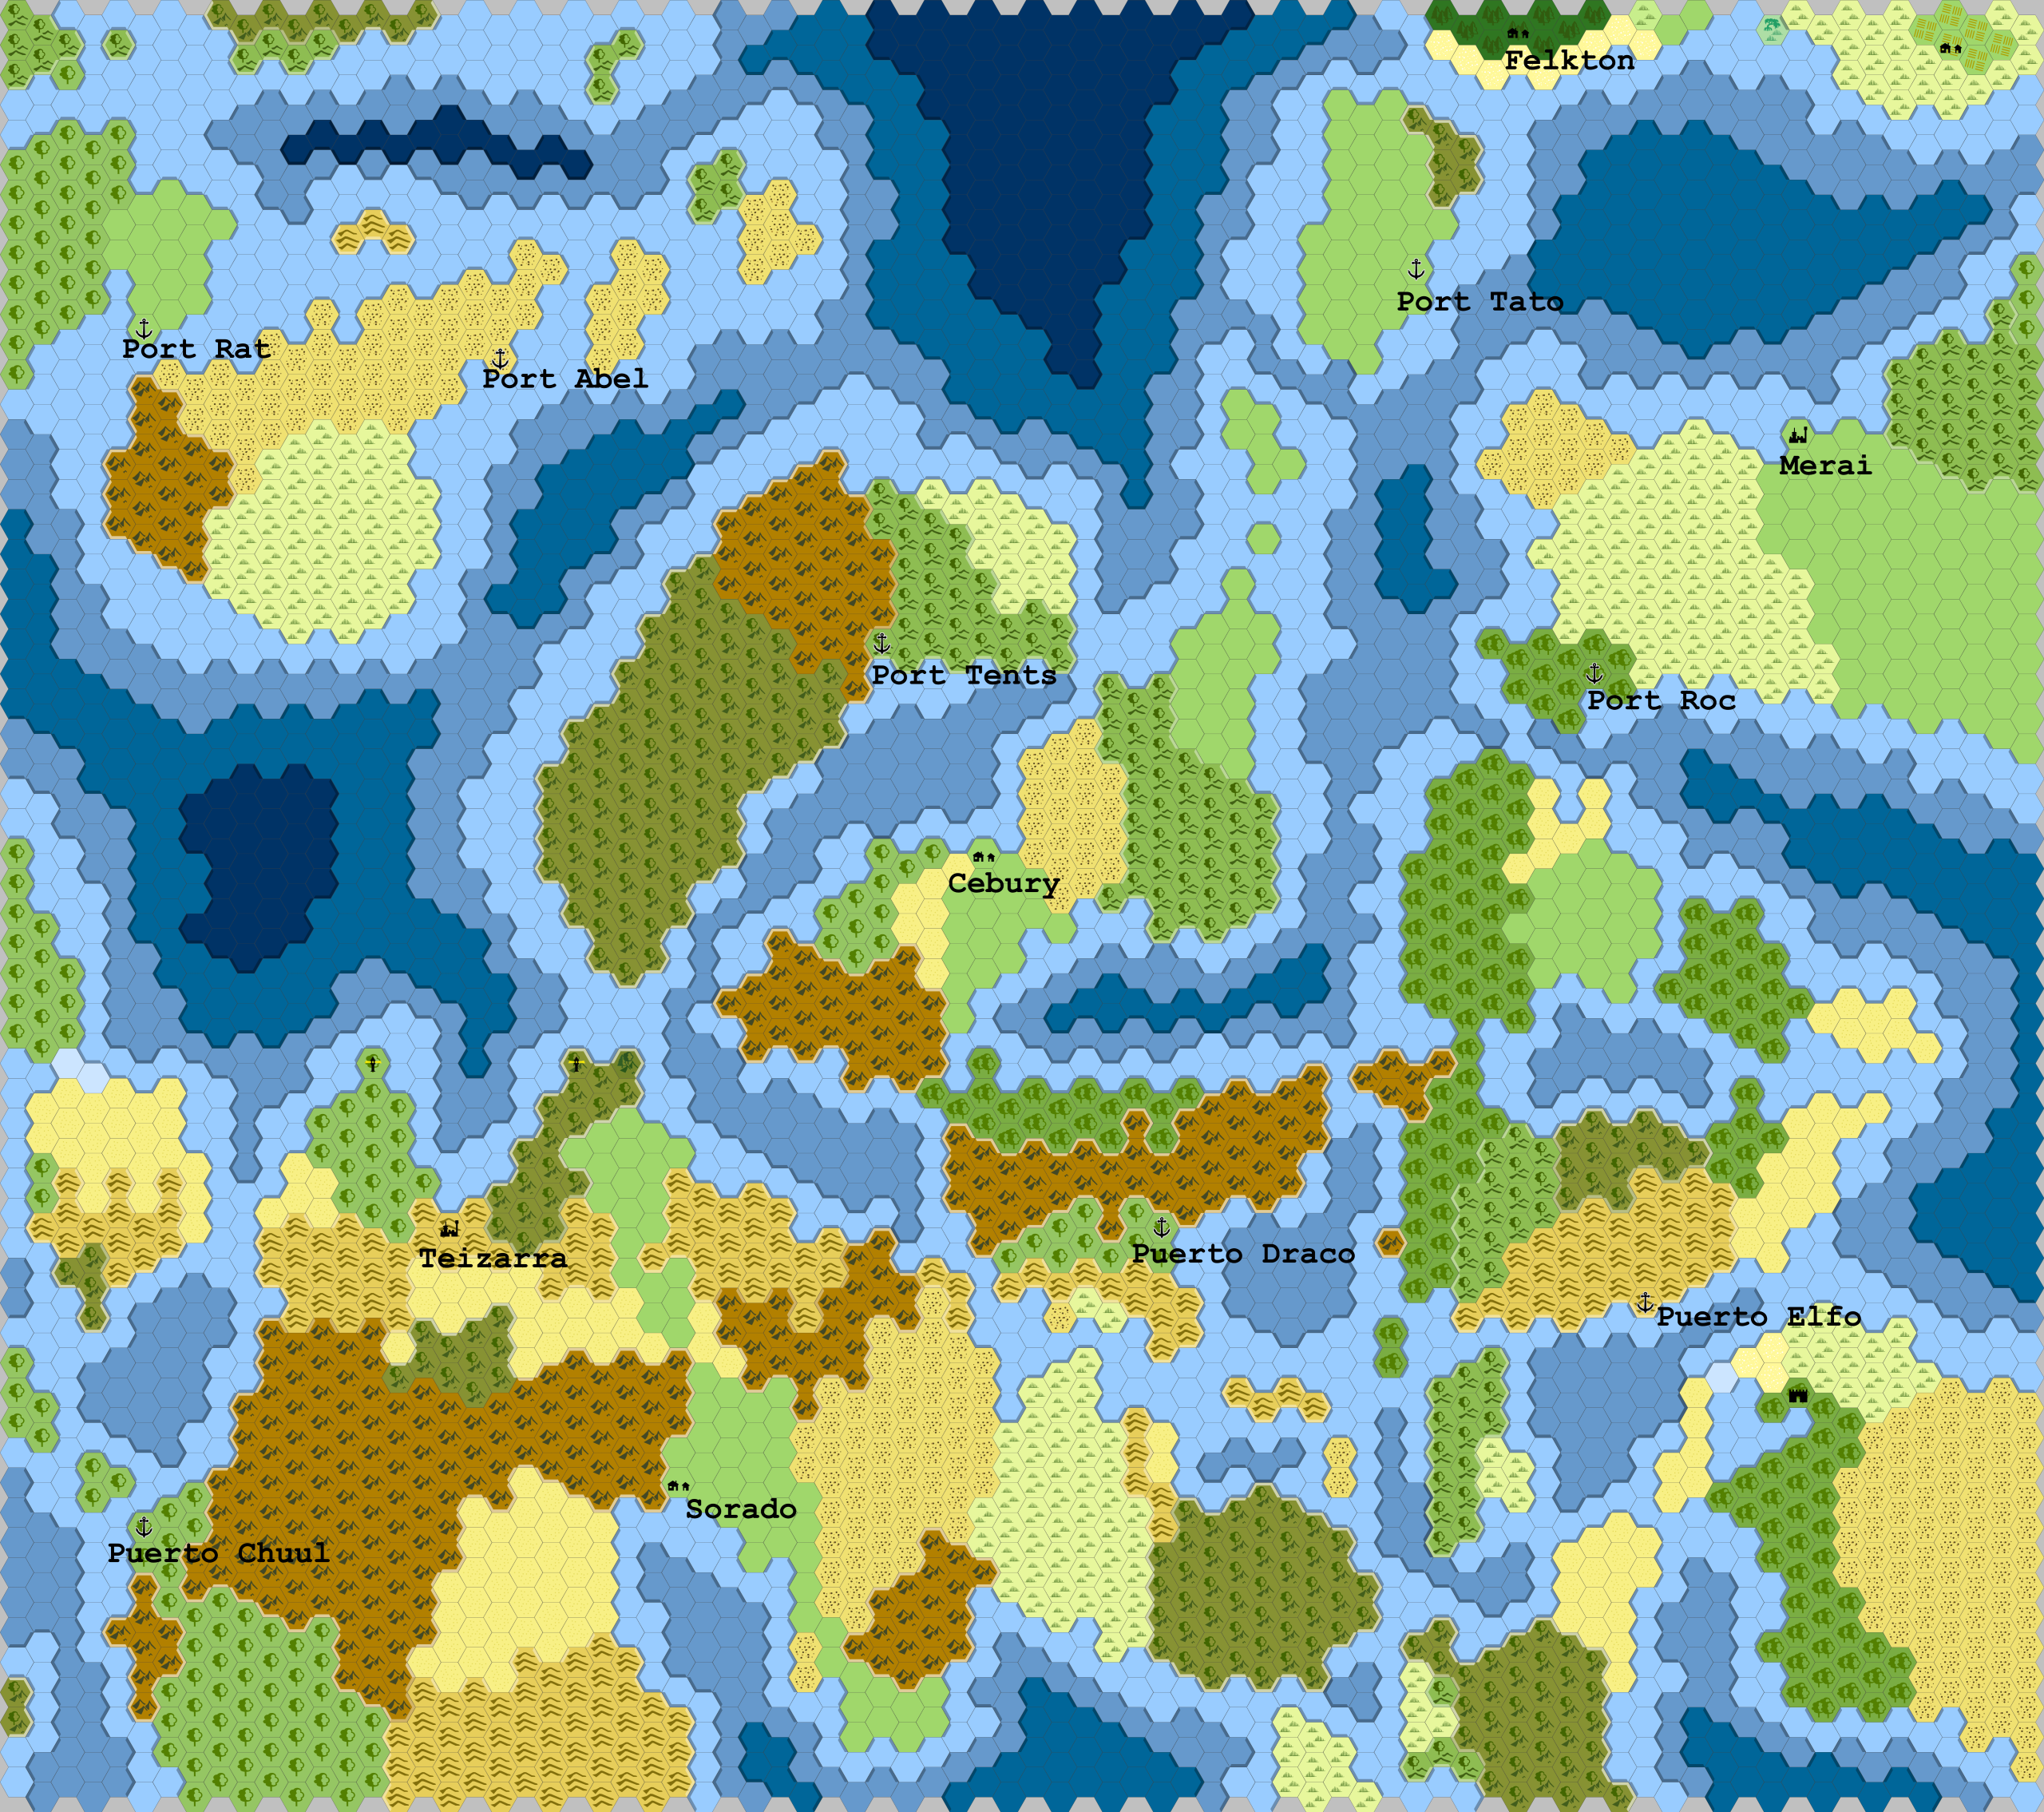 Large_Map2.png